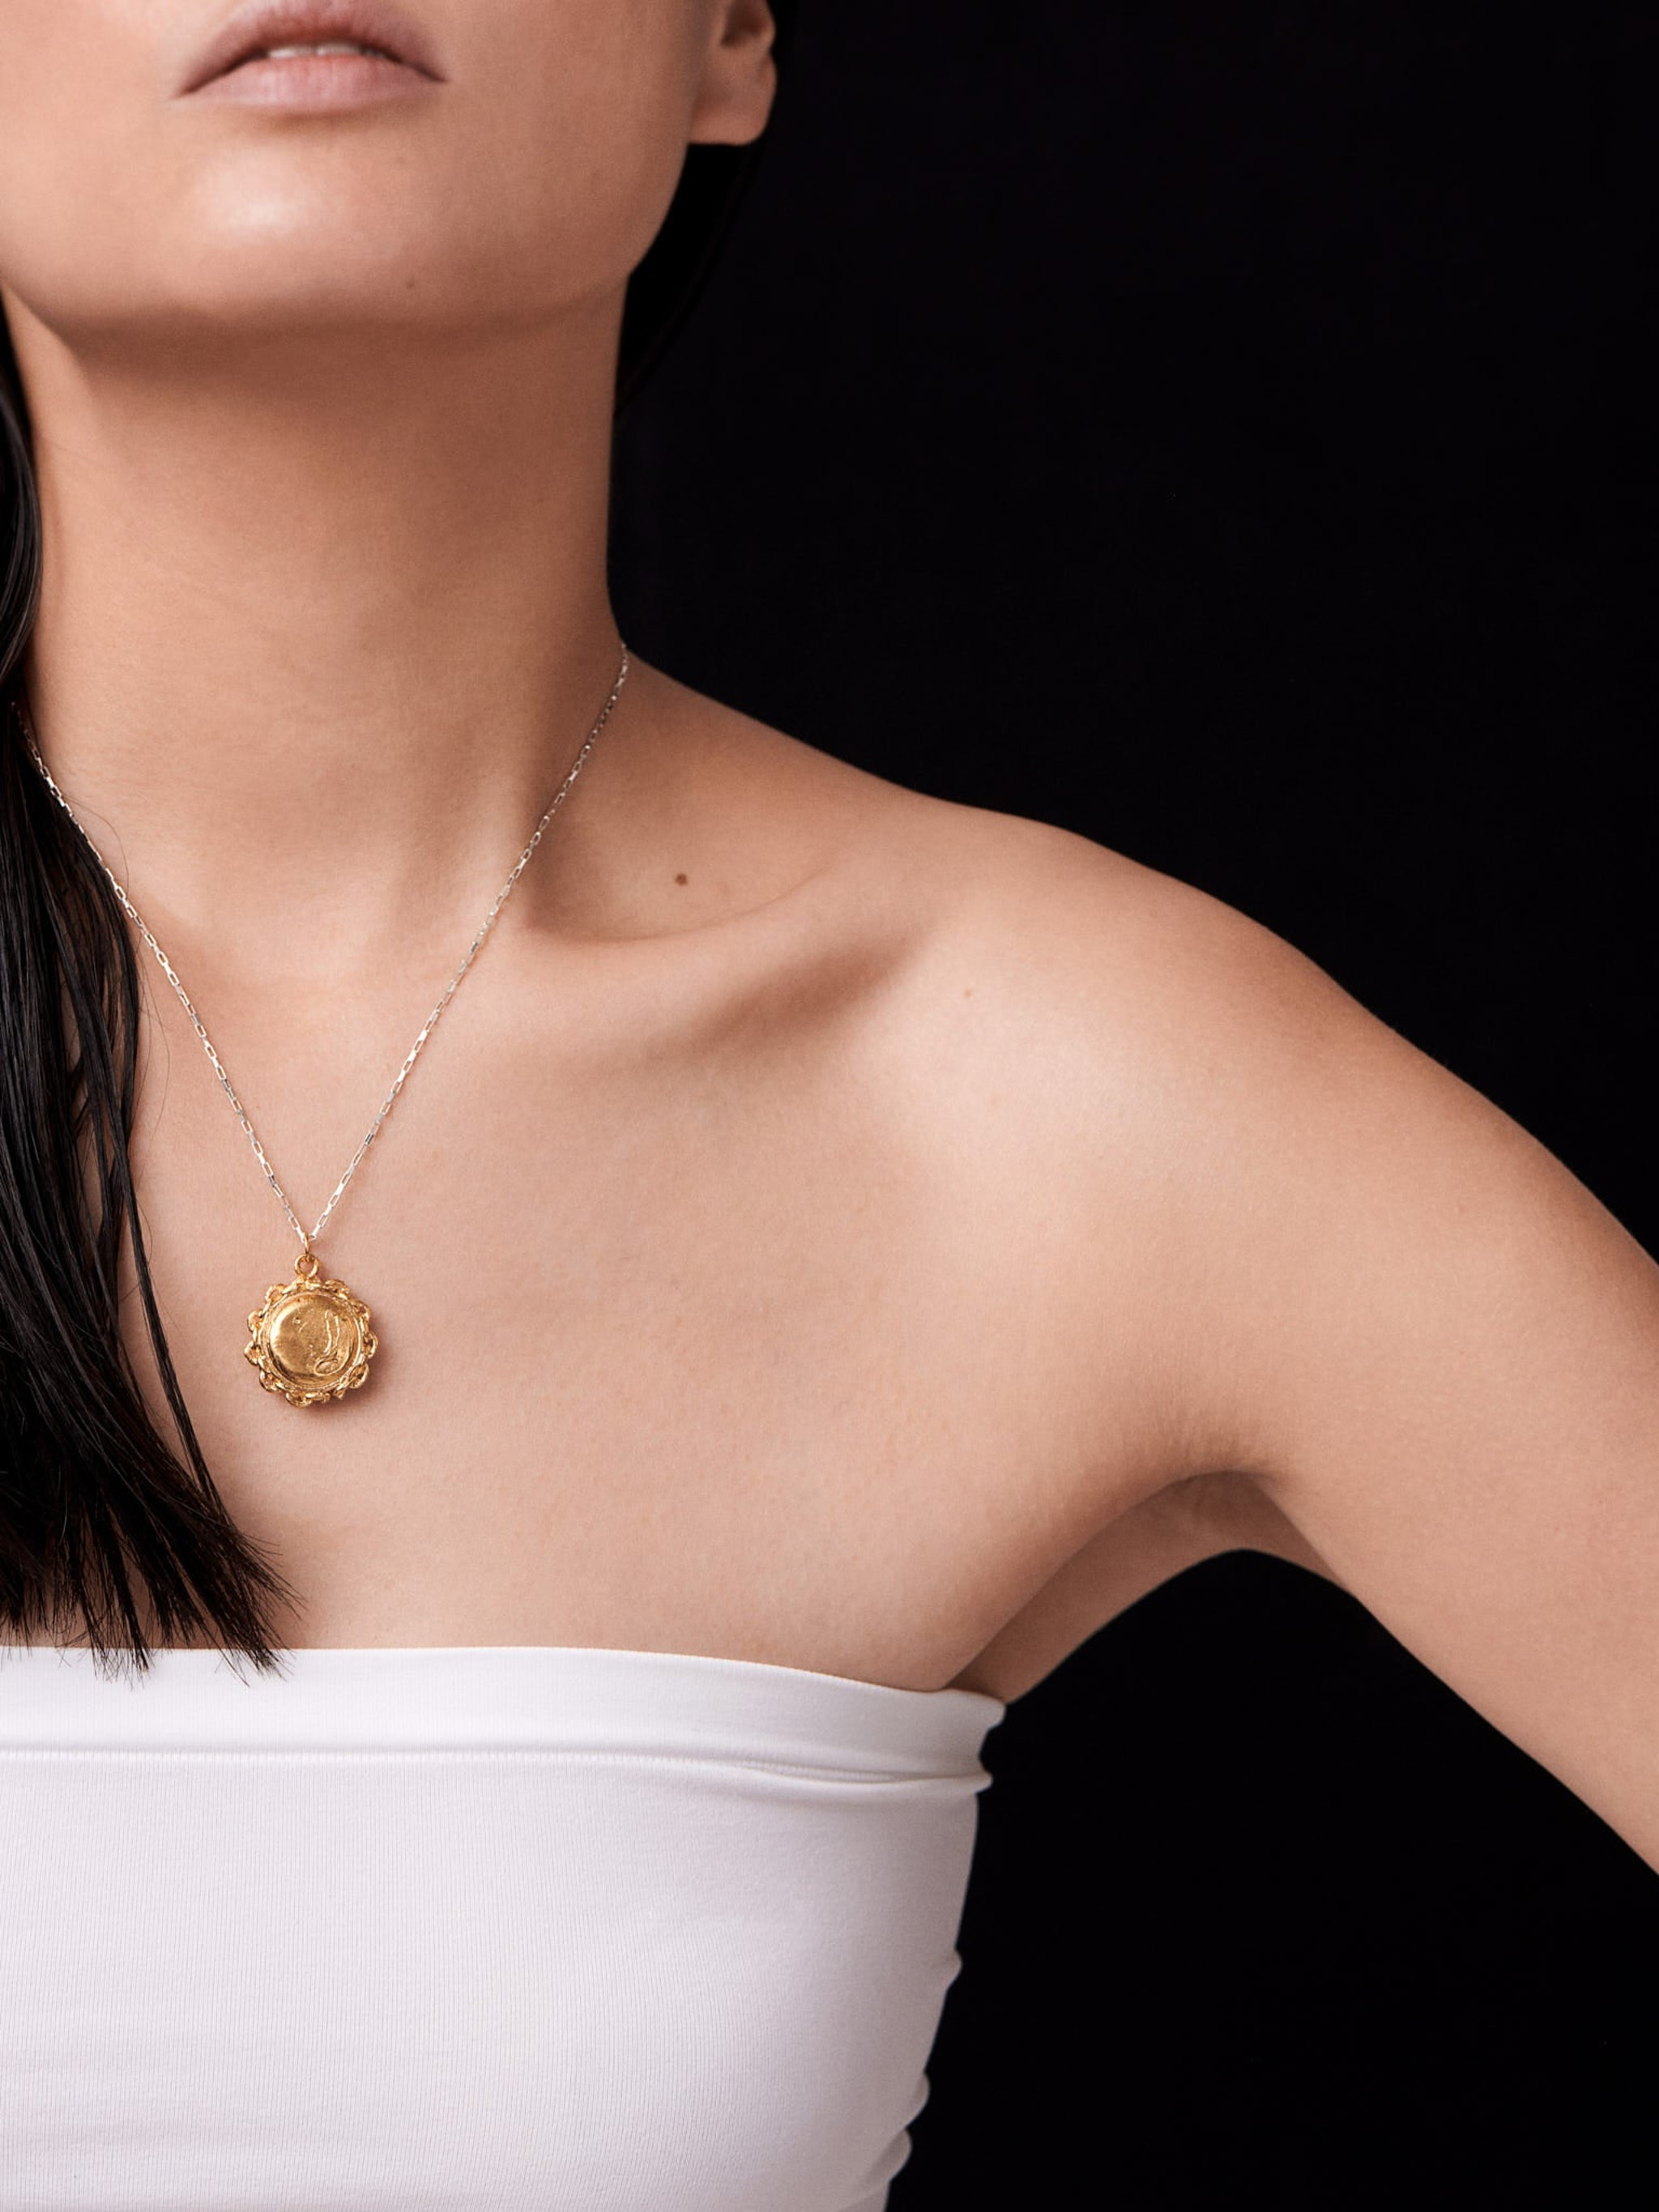 The invisible compass necklace